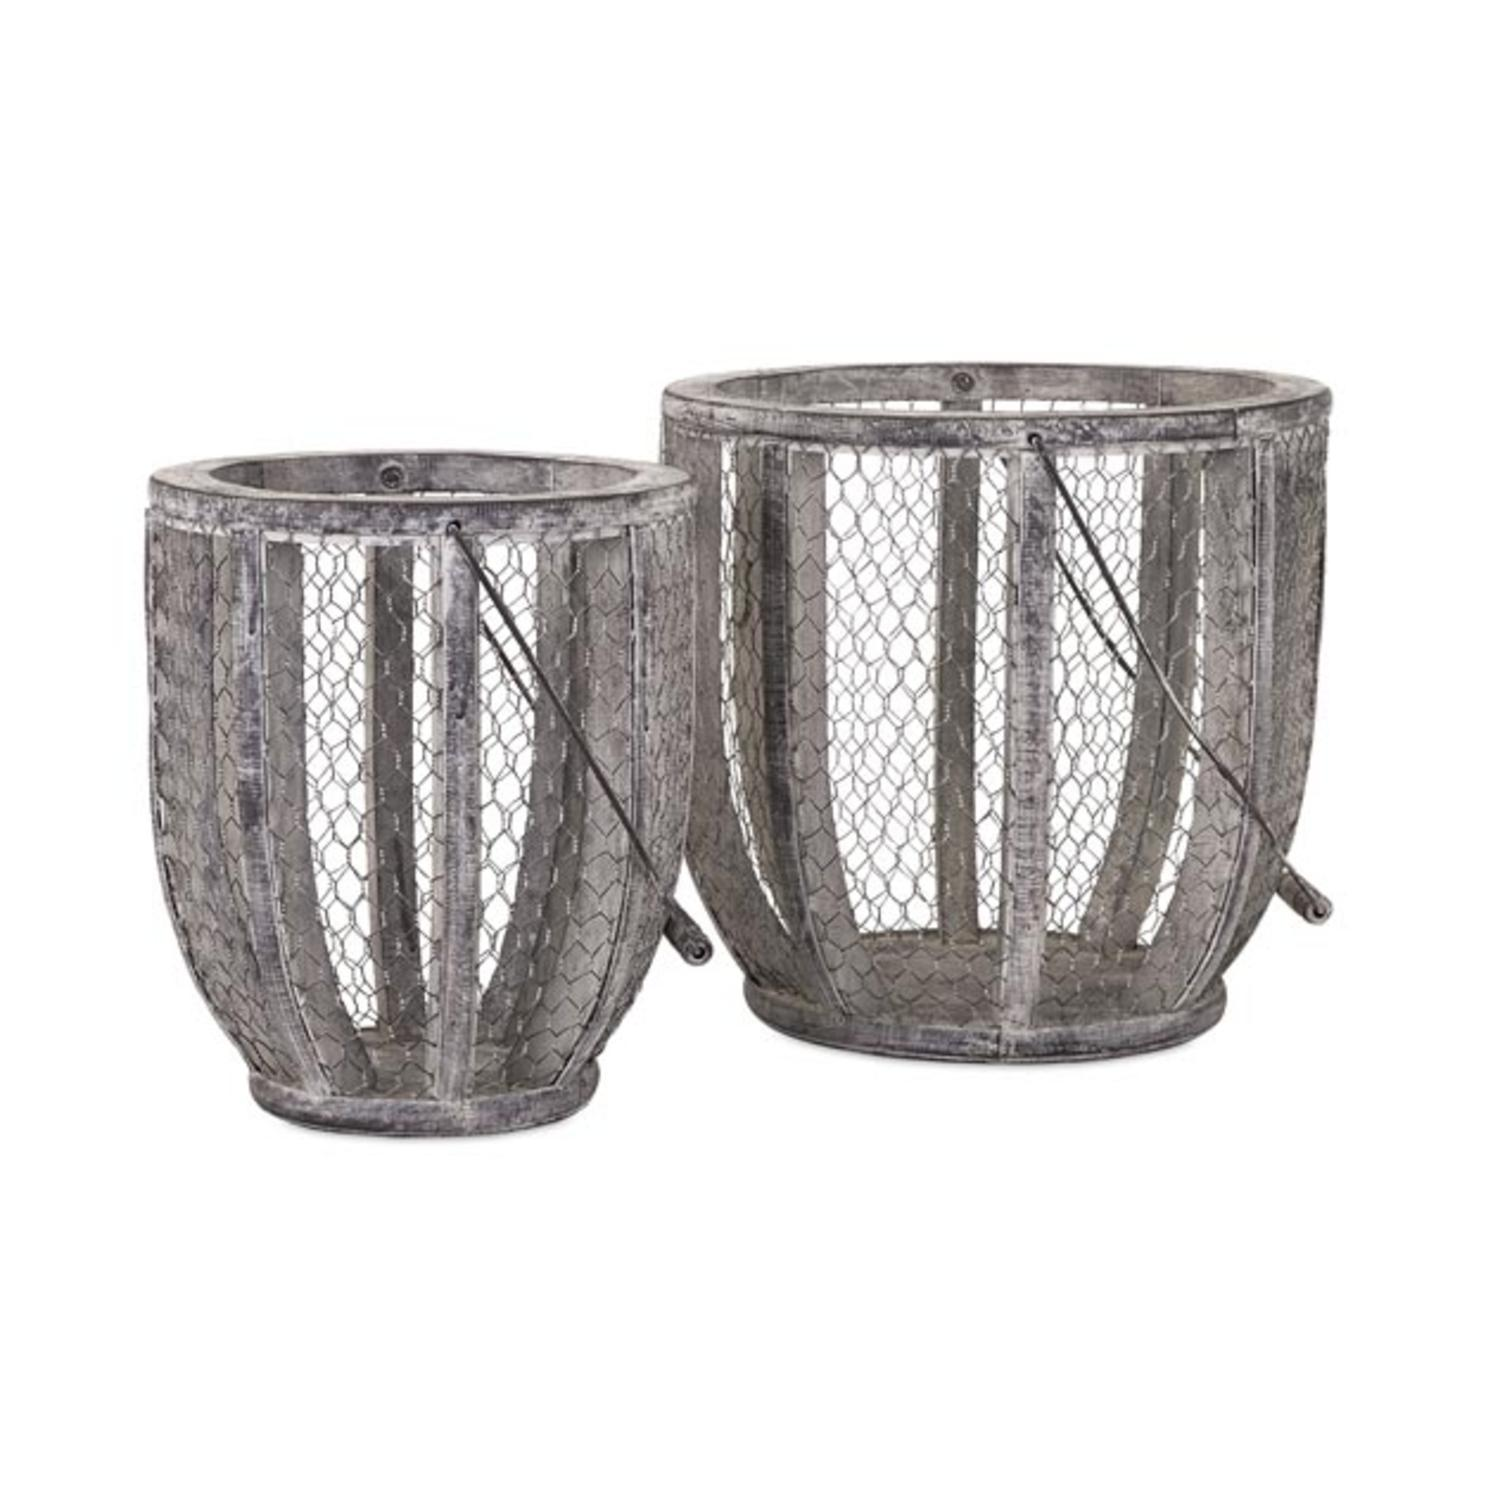 Set of 2 Farm House Country Rustic White and Gray Wire Mesh Gathering Baskets 24.5""